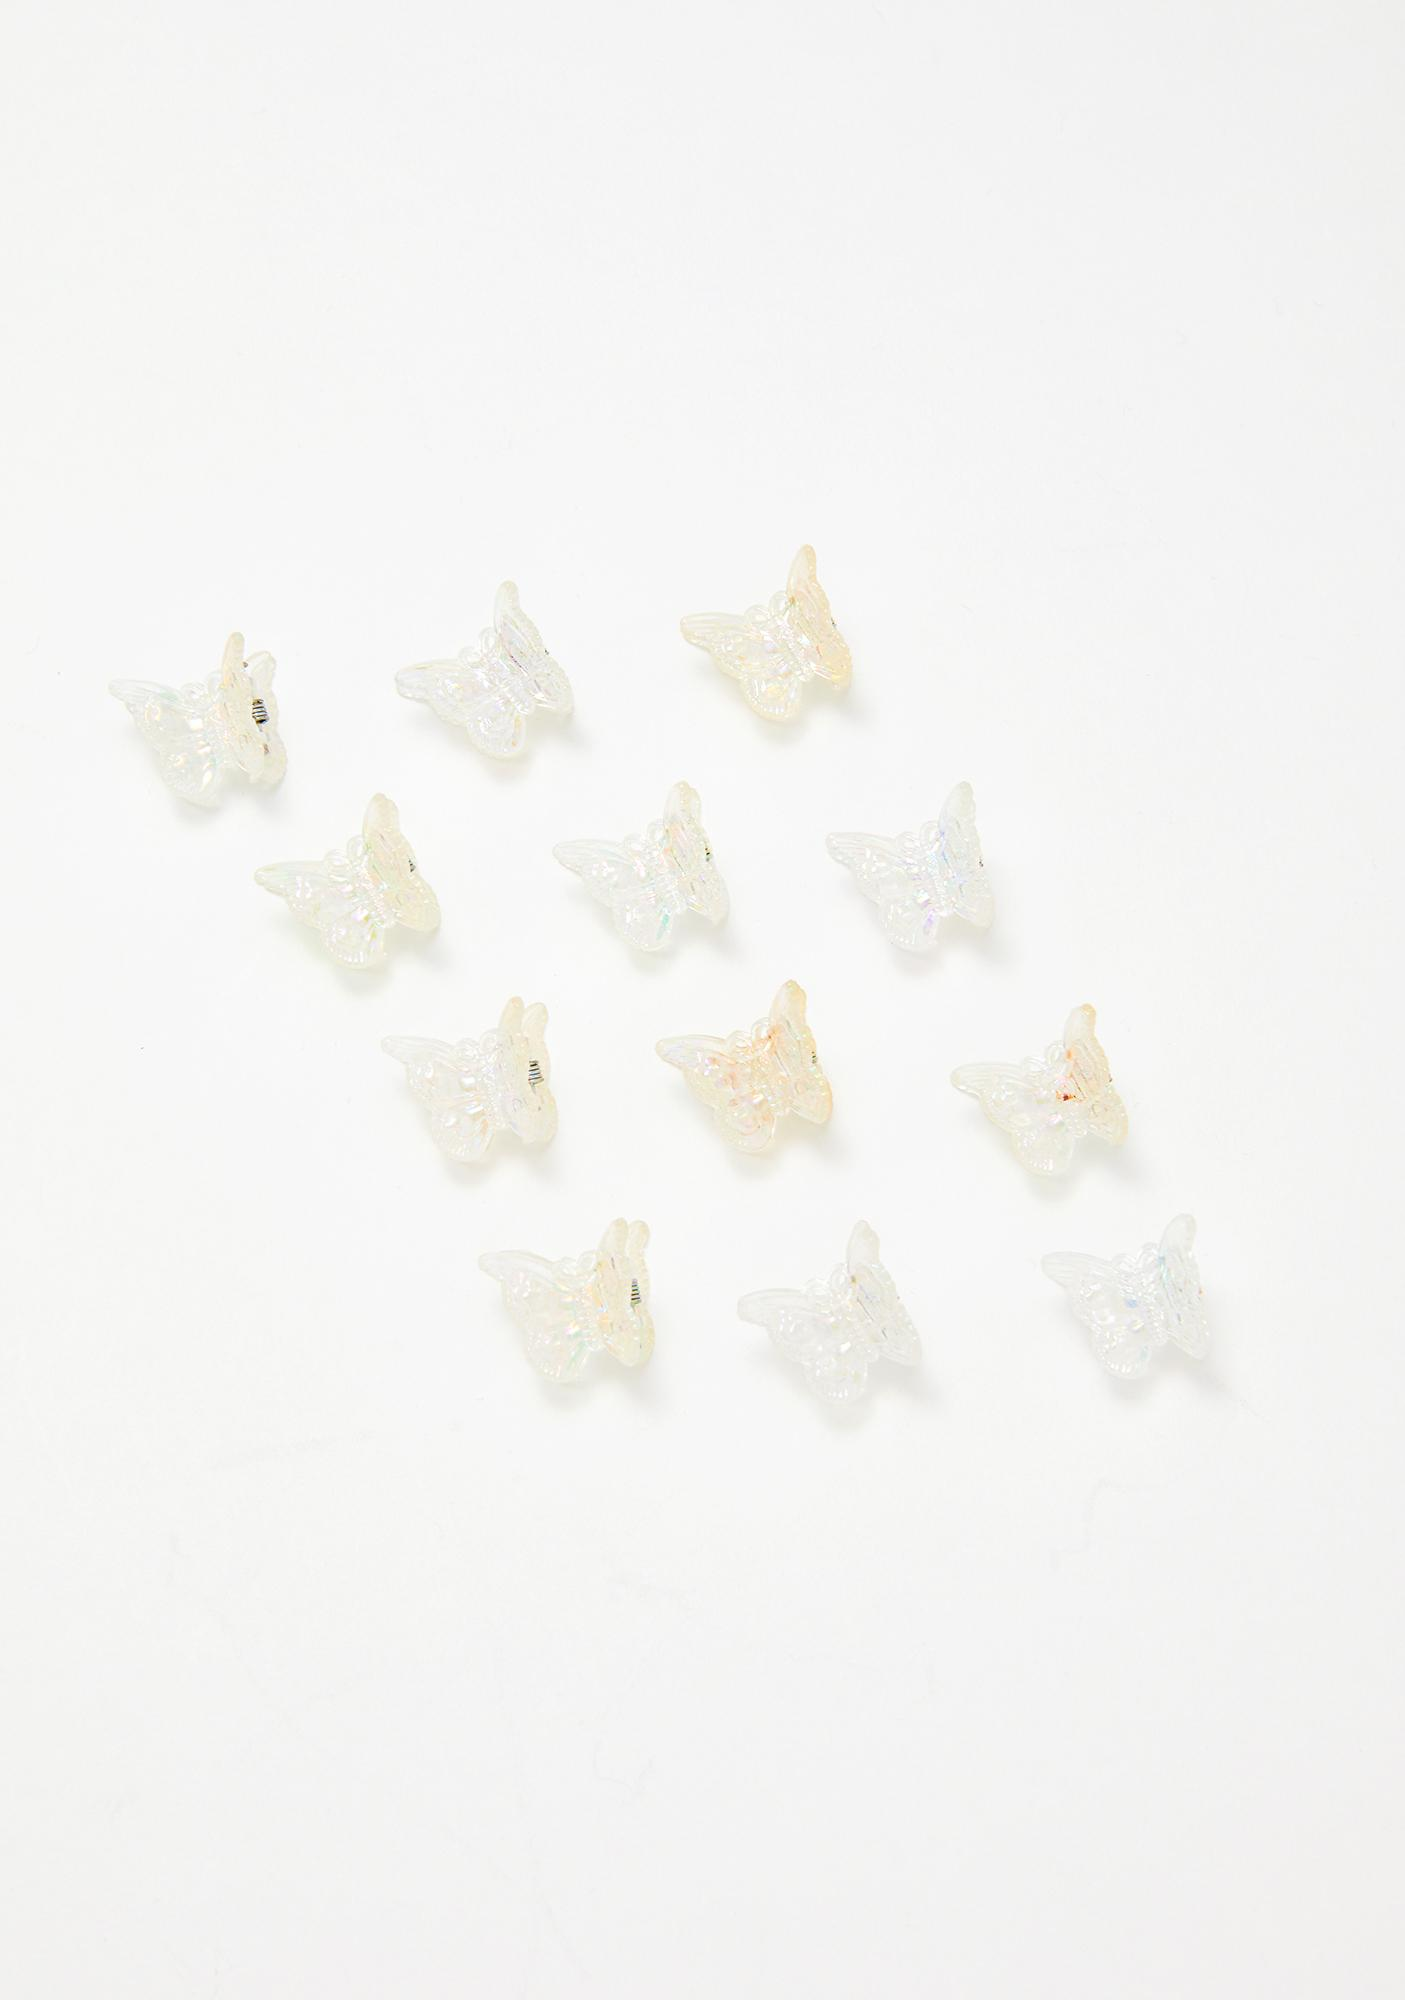 The Cobra Snake Crystal Clear Butterfly Clip Set